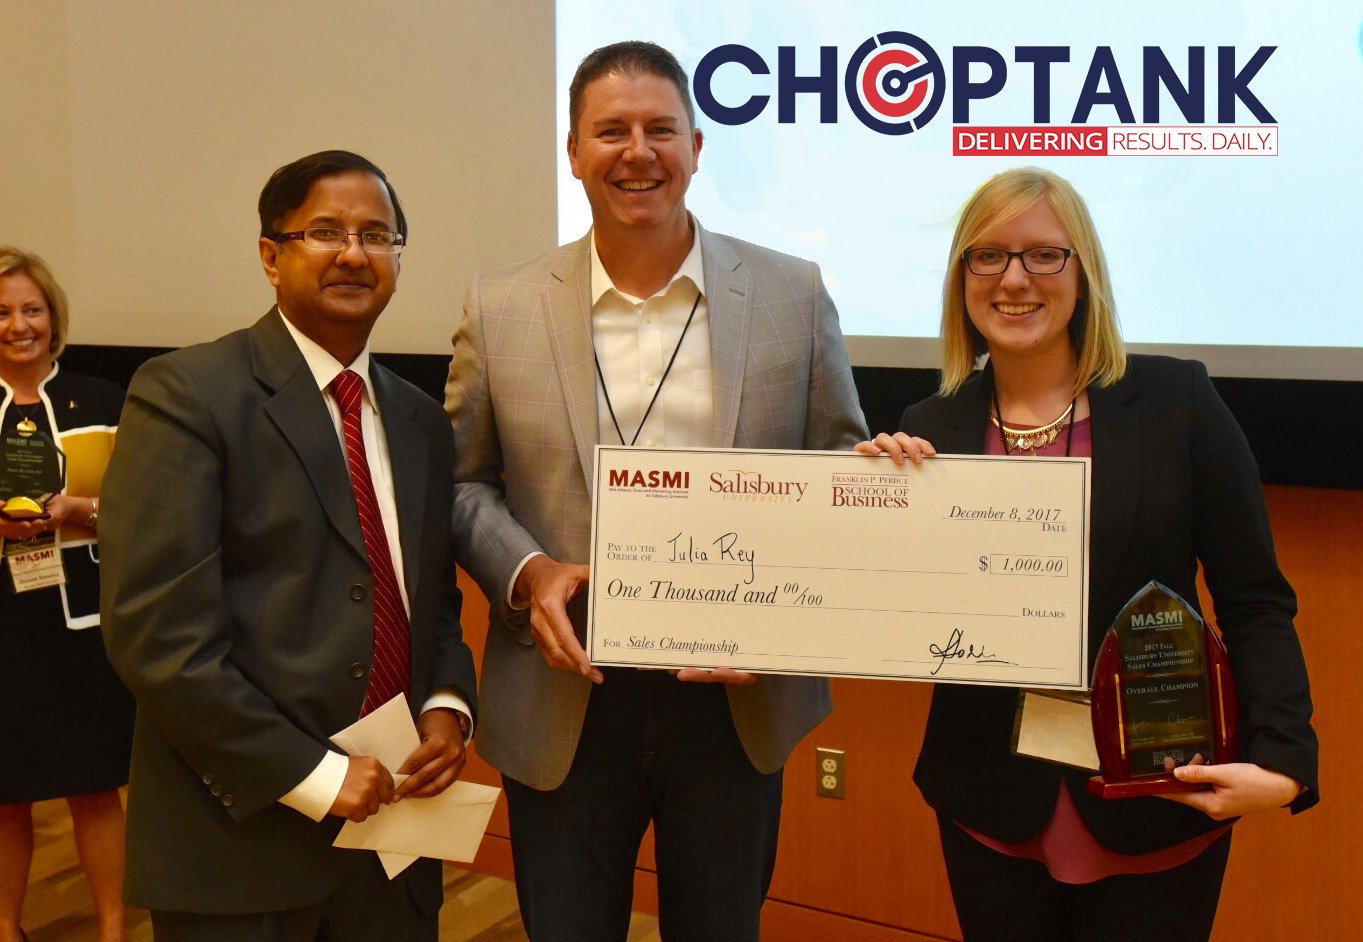 L-R Amit Poddar, Geoff Turner and Julia Fey, Choptank Sales Program award winner at Salisbury University.jpg